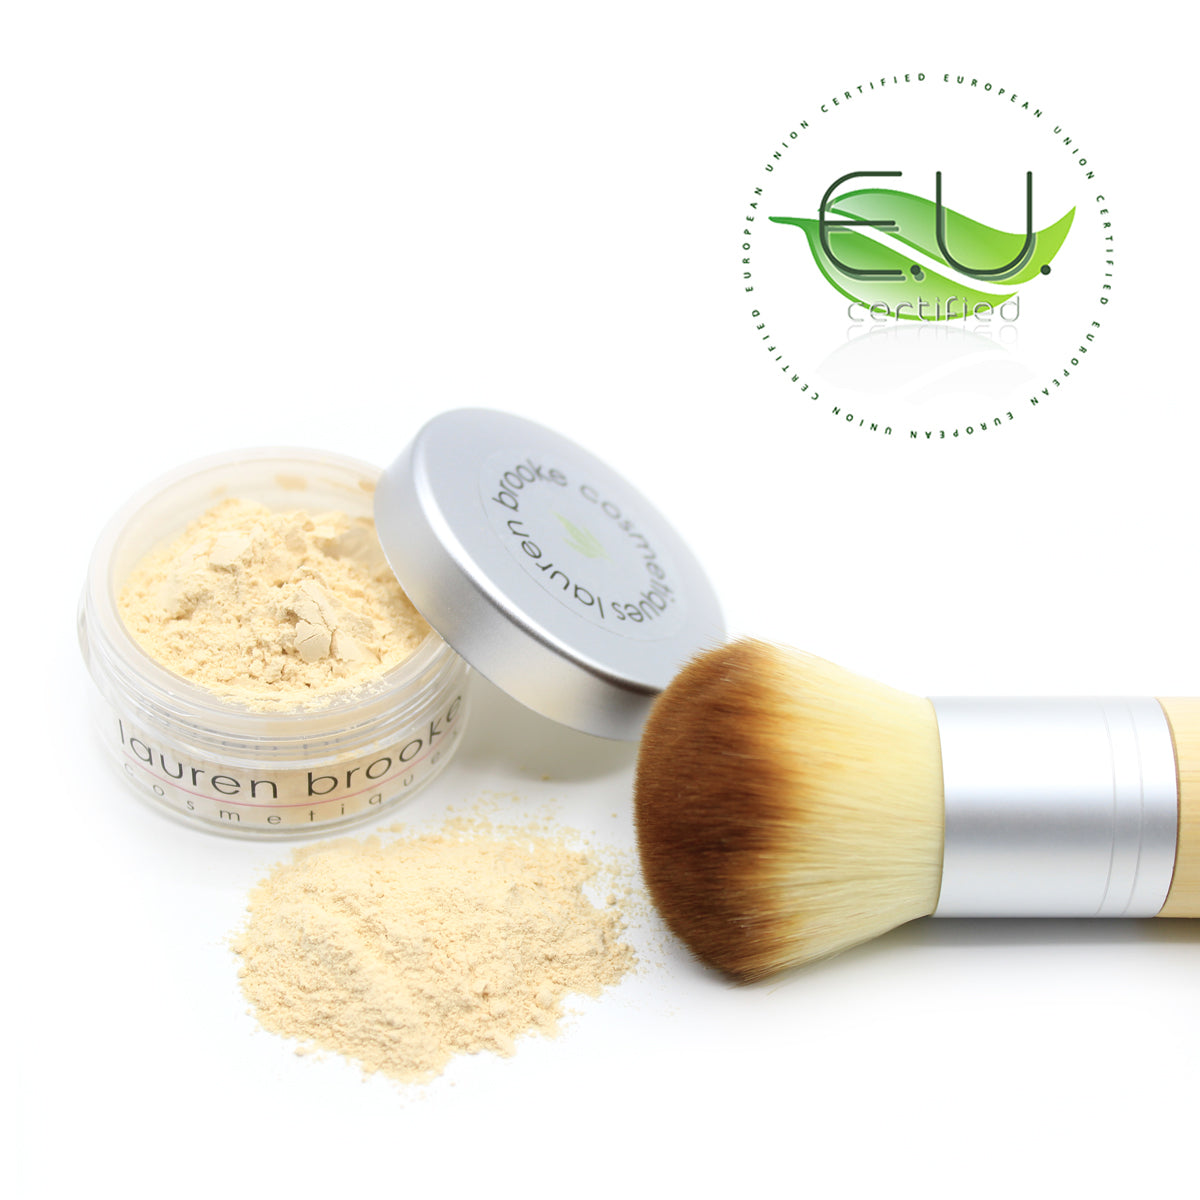 Banana Corrective Finishing Powder